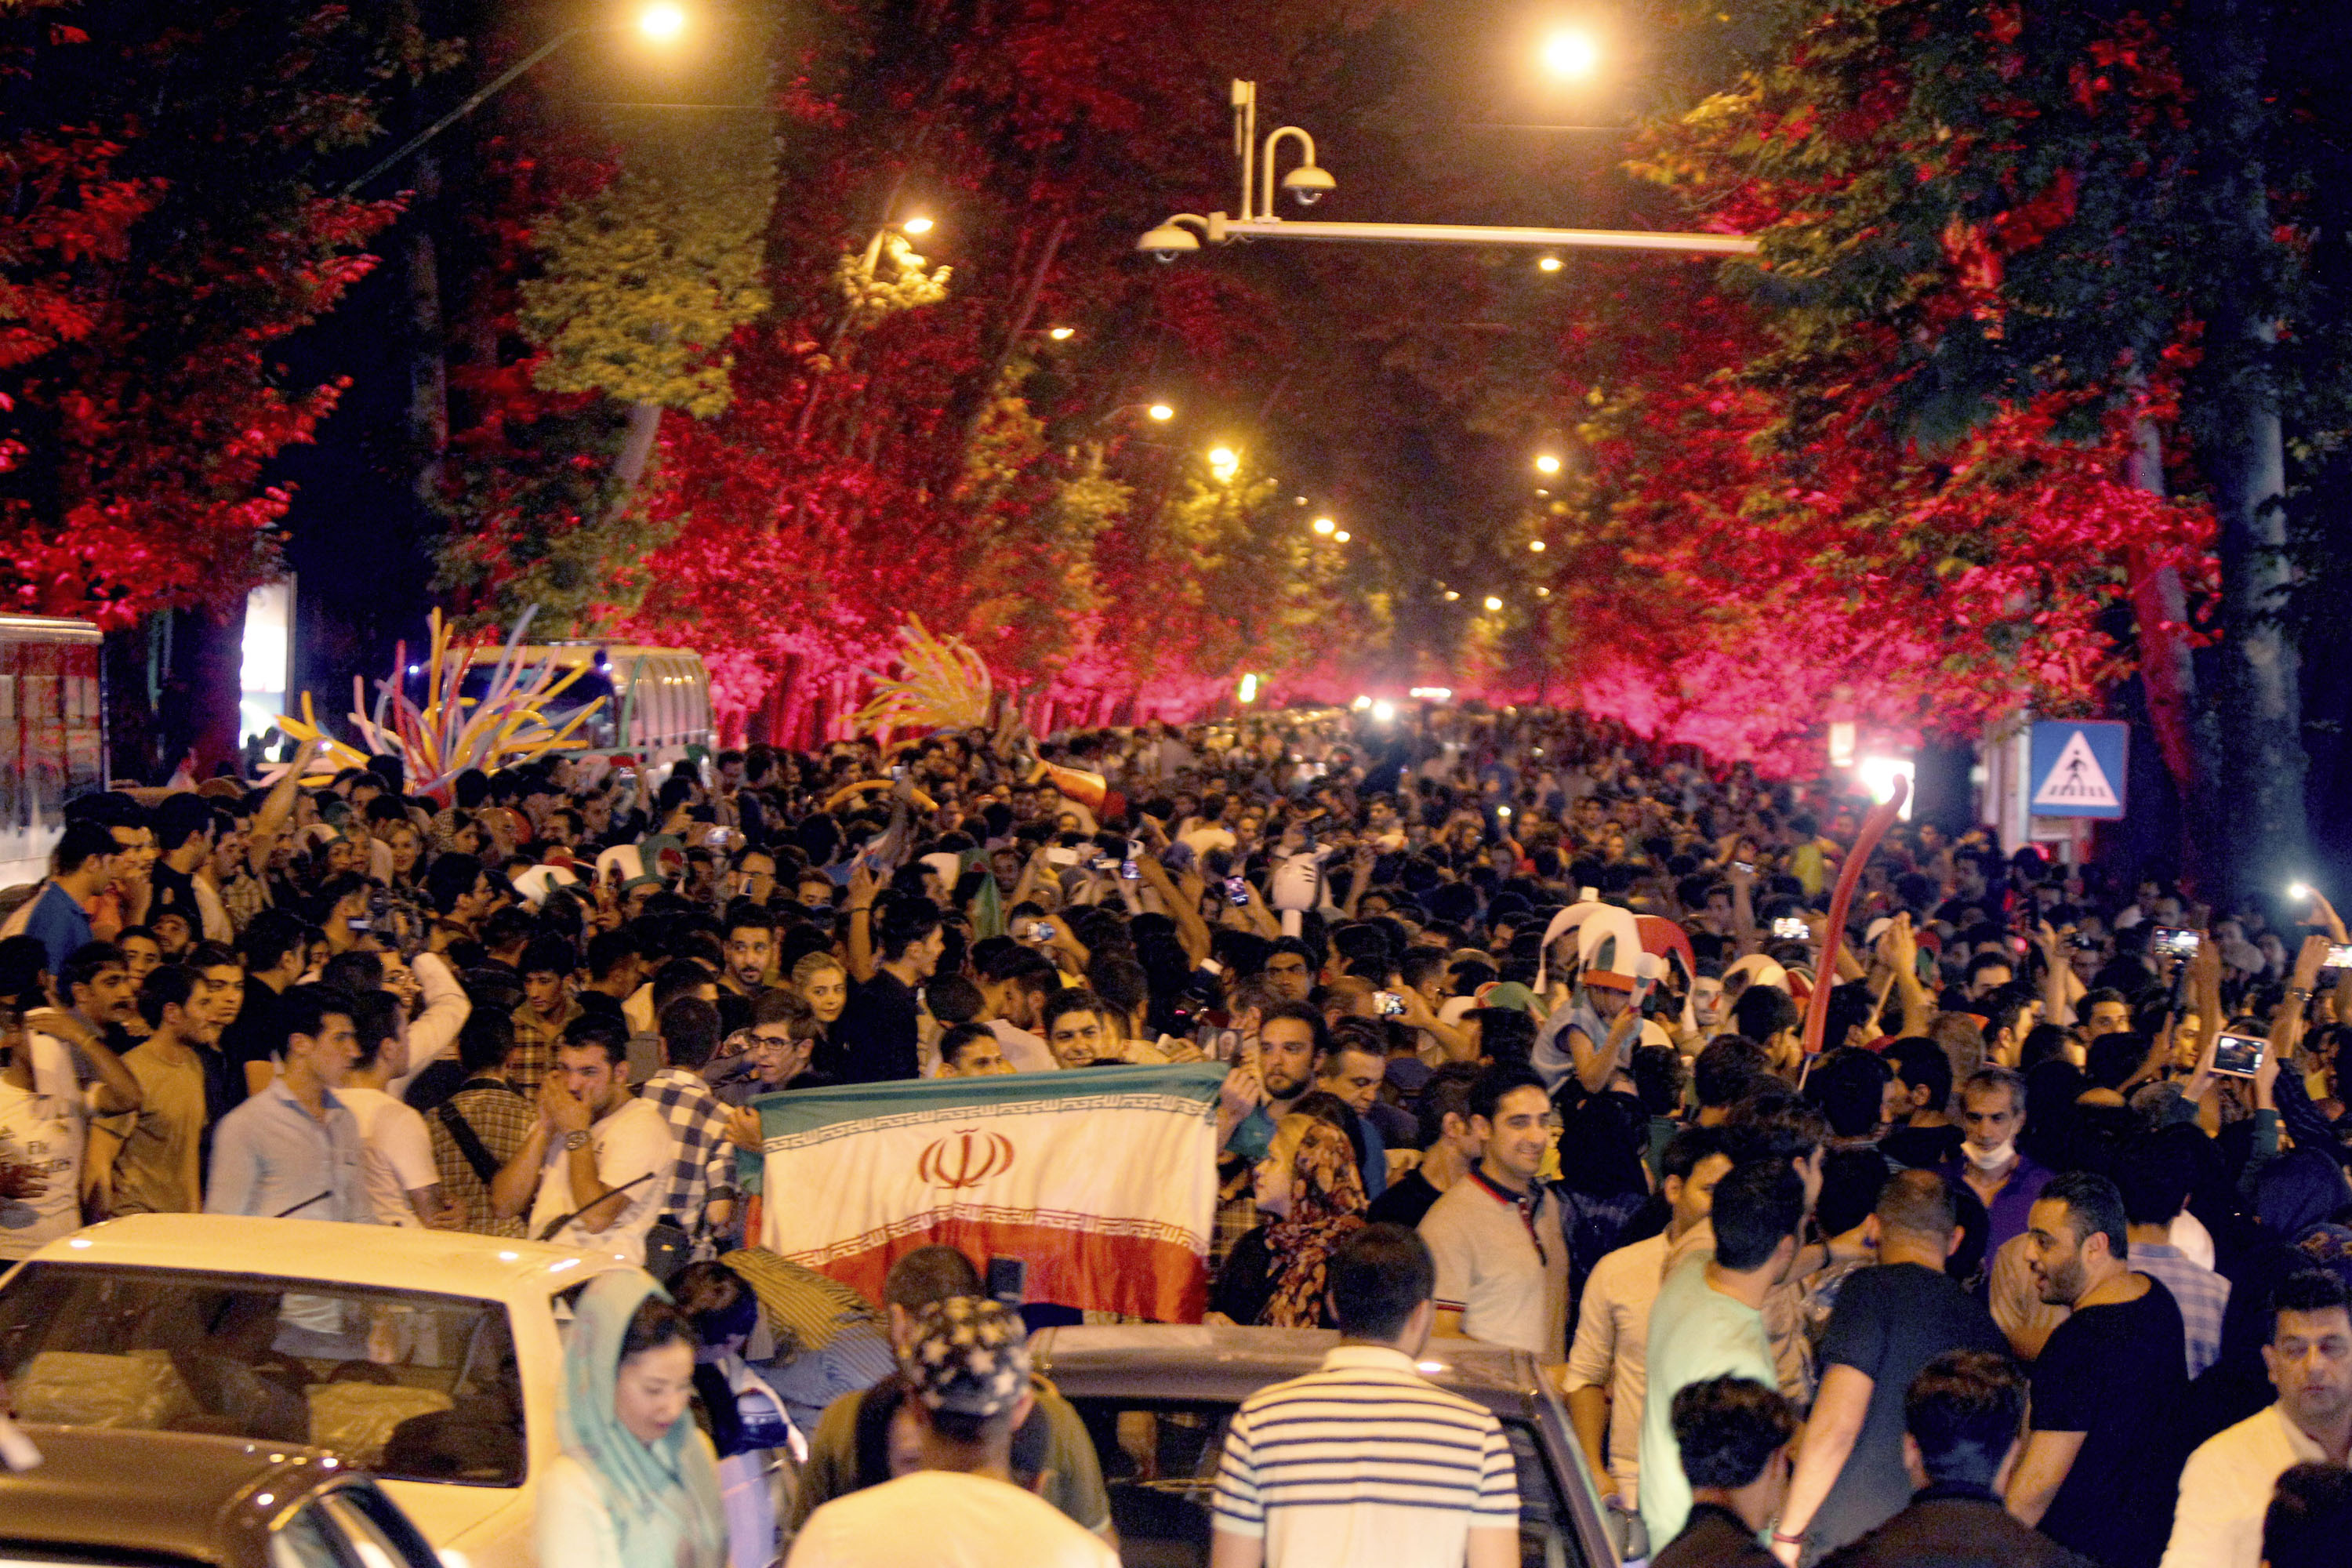 Iranians take to the streets of Tehran on July 14 to celebrate their country's historic nuclear accord.